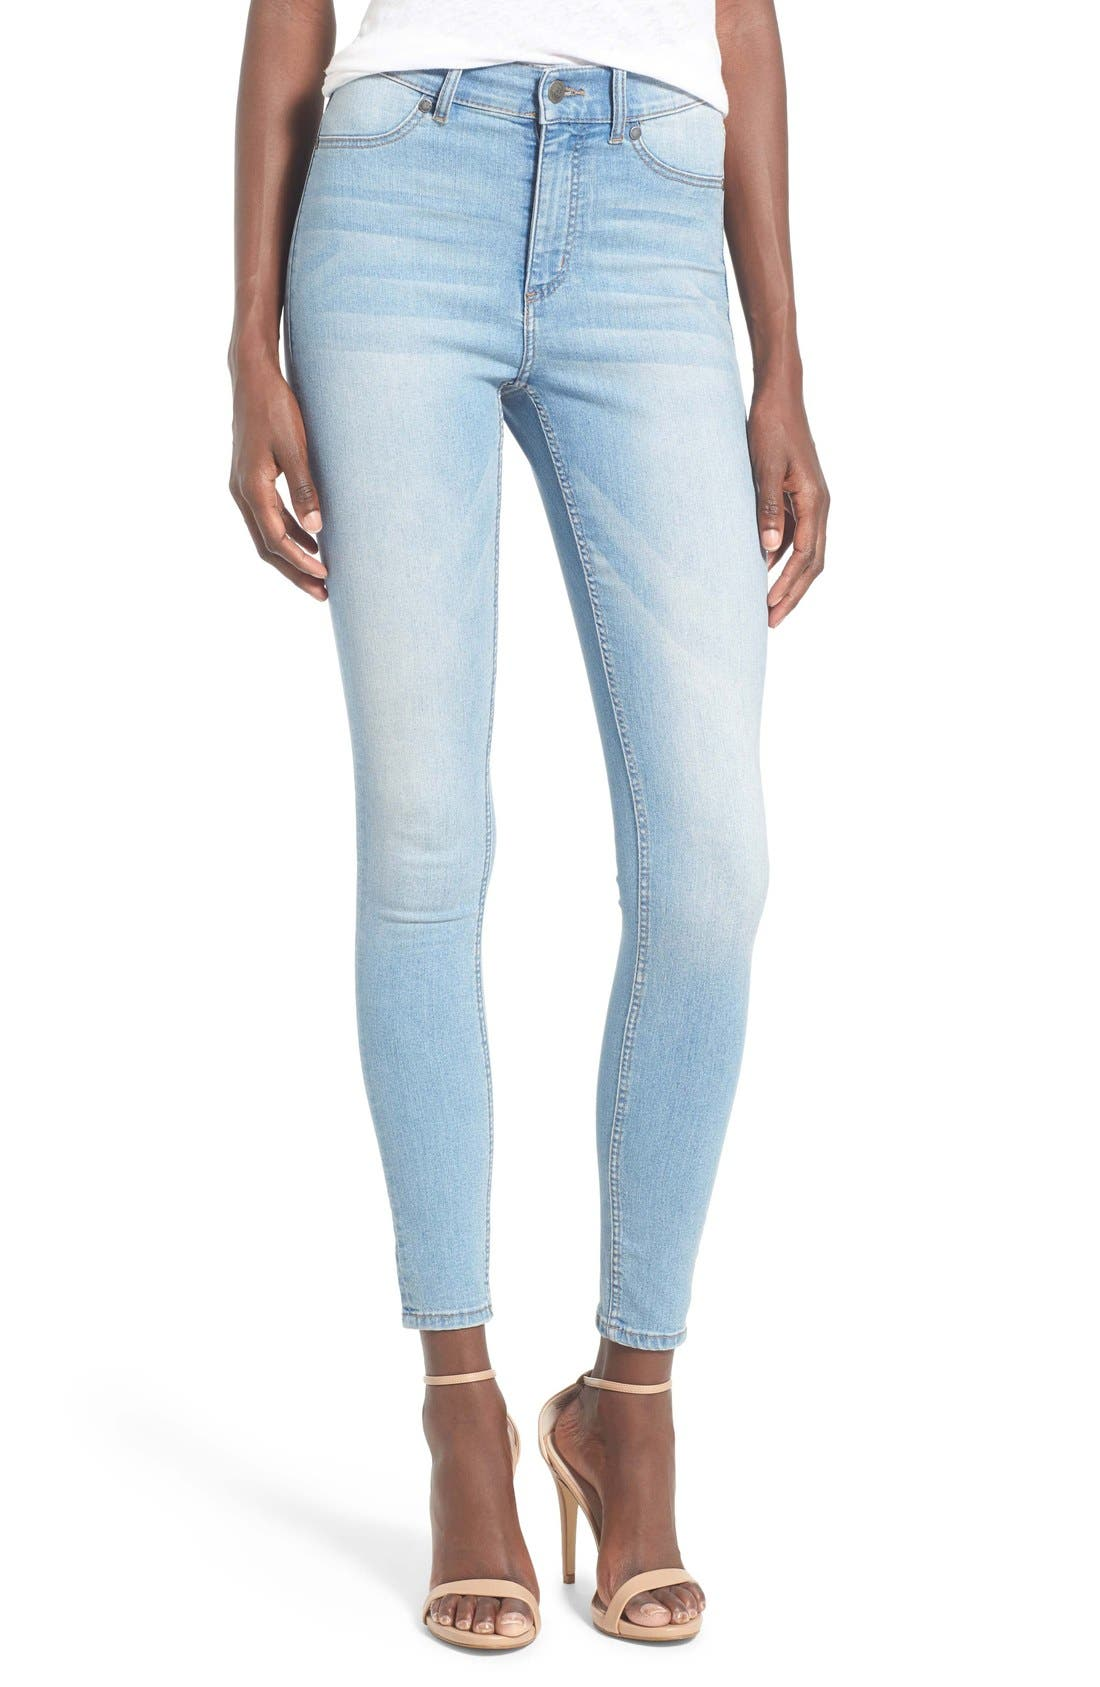 Main Image - Cheap Monday 'High Spray' High Rise Skinny Jeans (Stone Bleach)